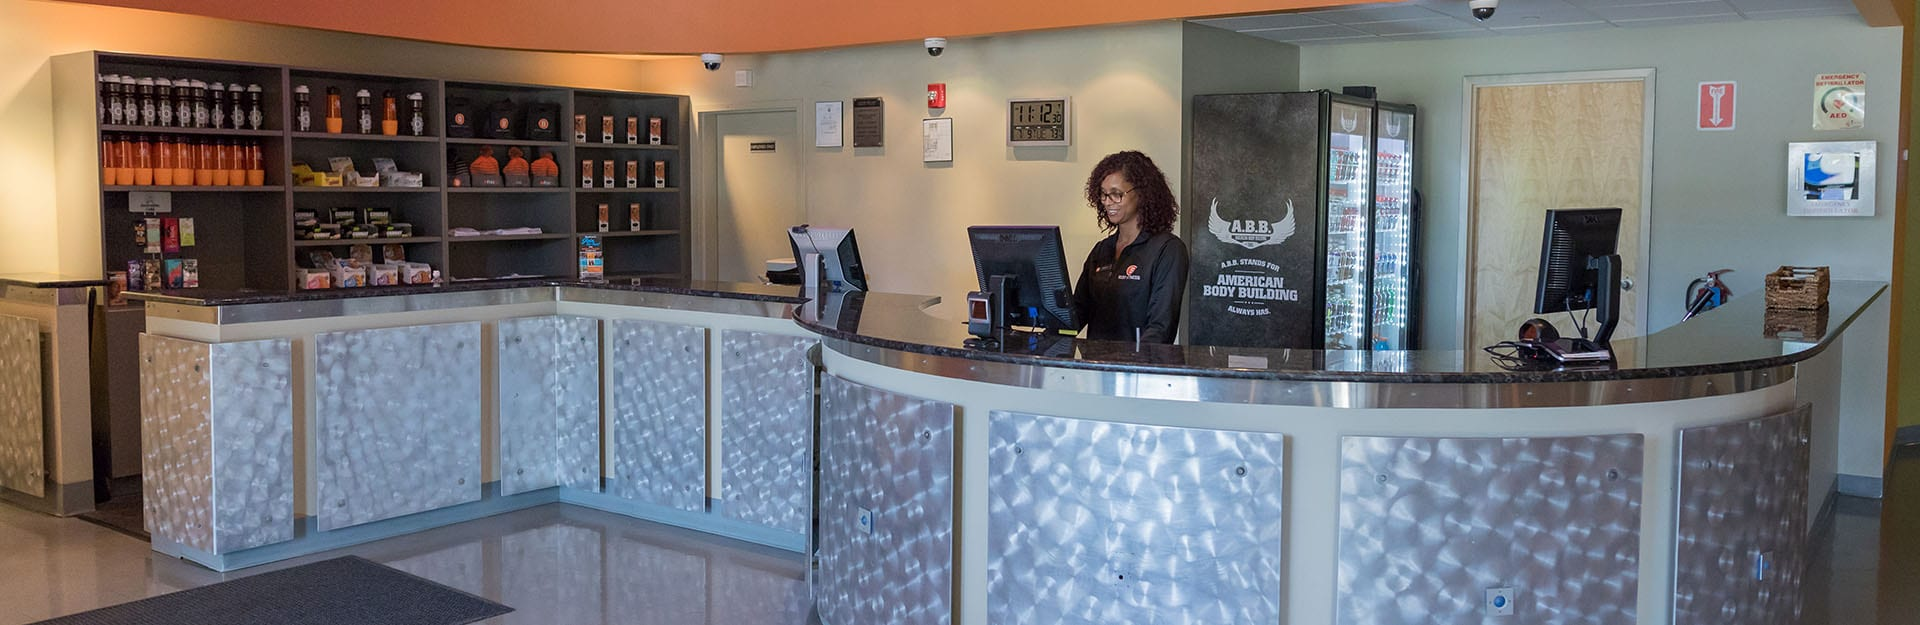 lobby with registration desk and merchandise